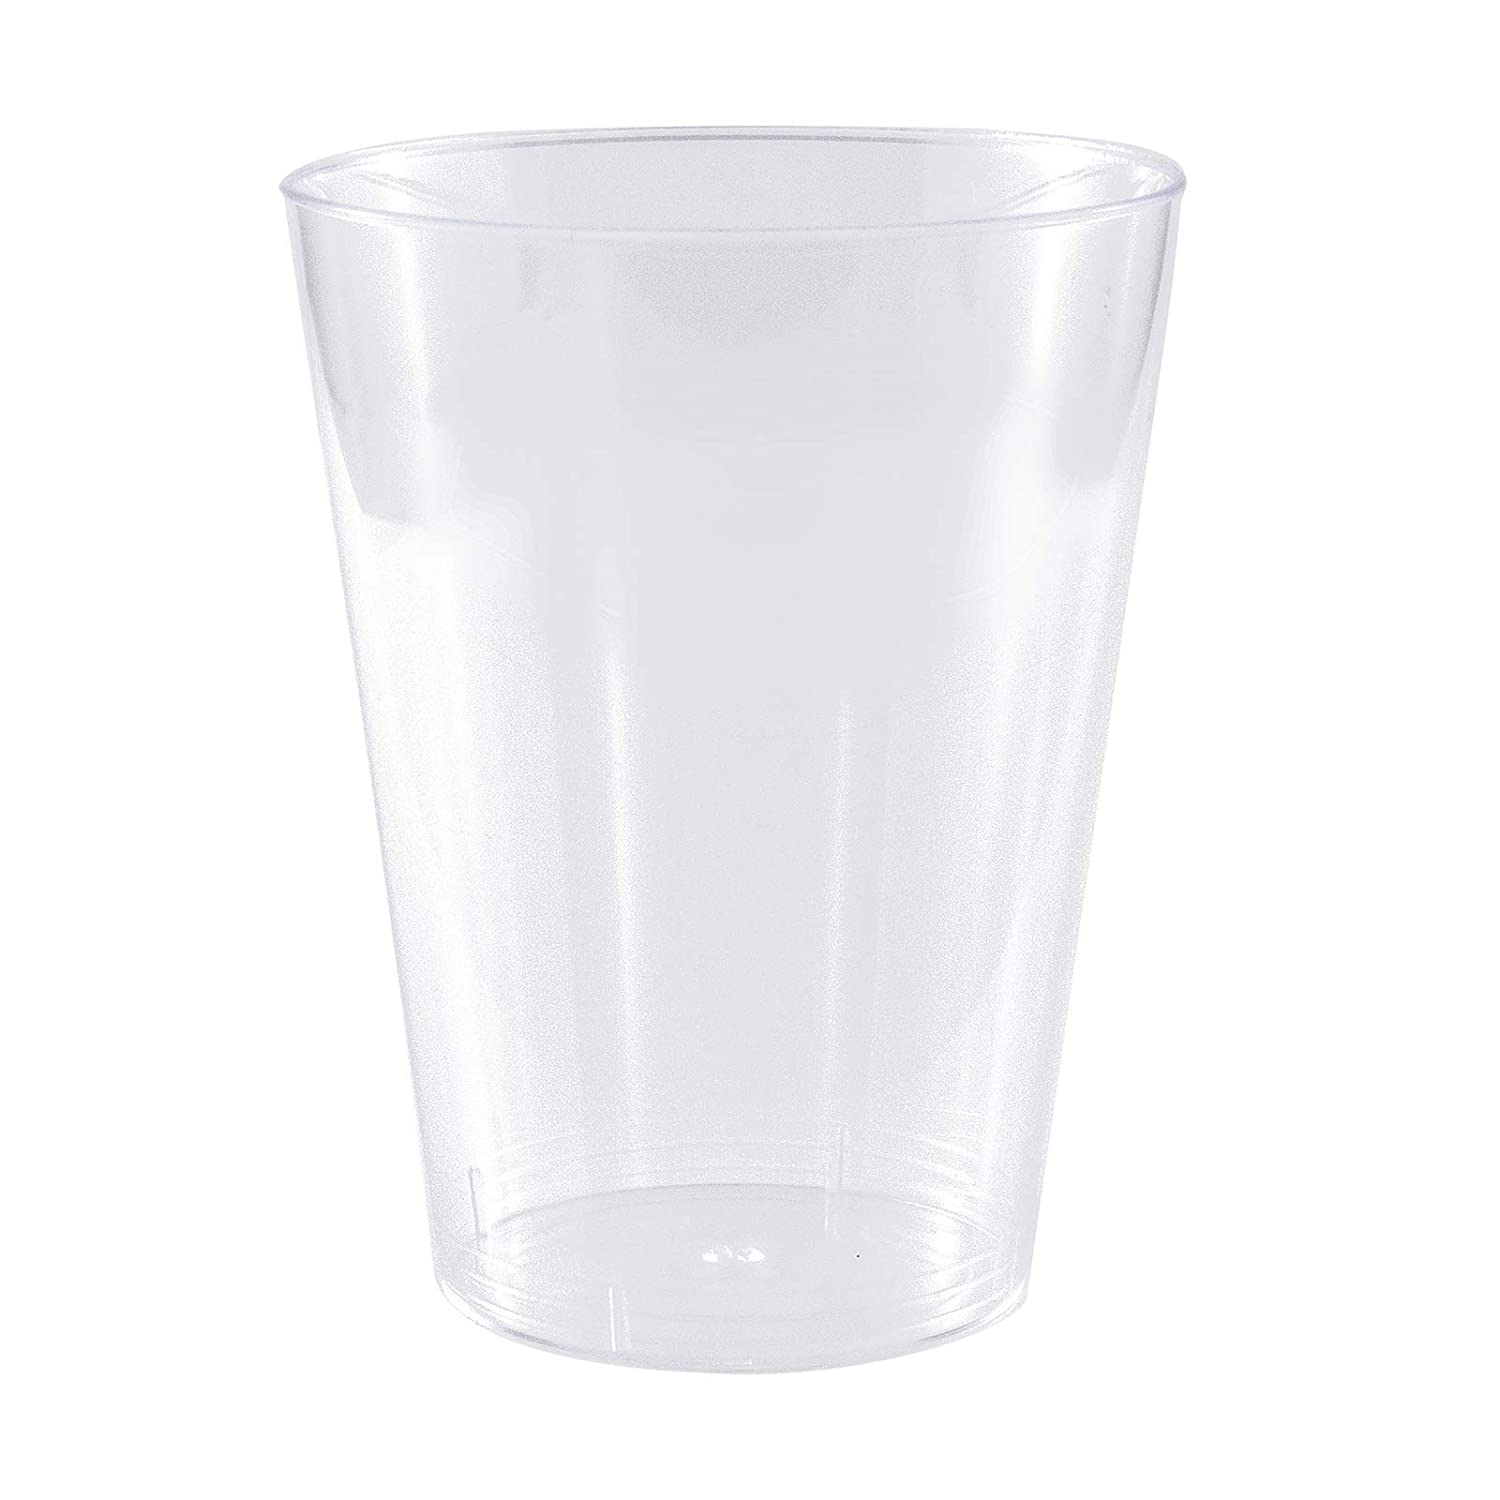 Plastic Tumblers/Glasses Hard Disposable Quality 200ml - Party Goods 40 Pack MASHERS